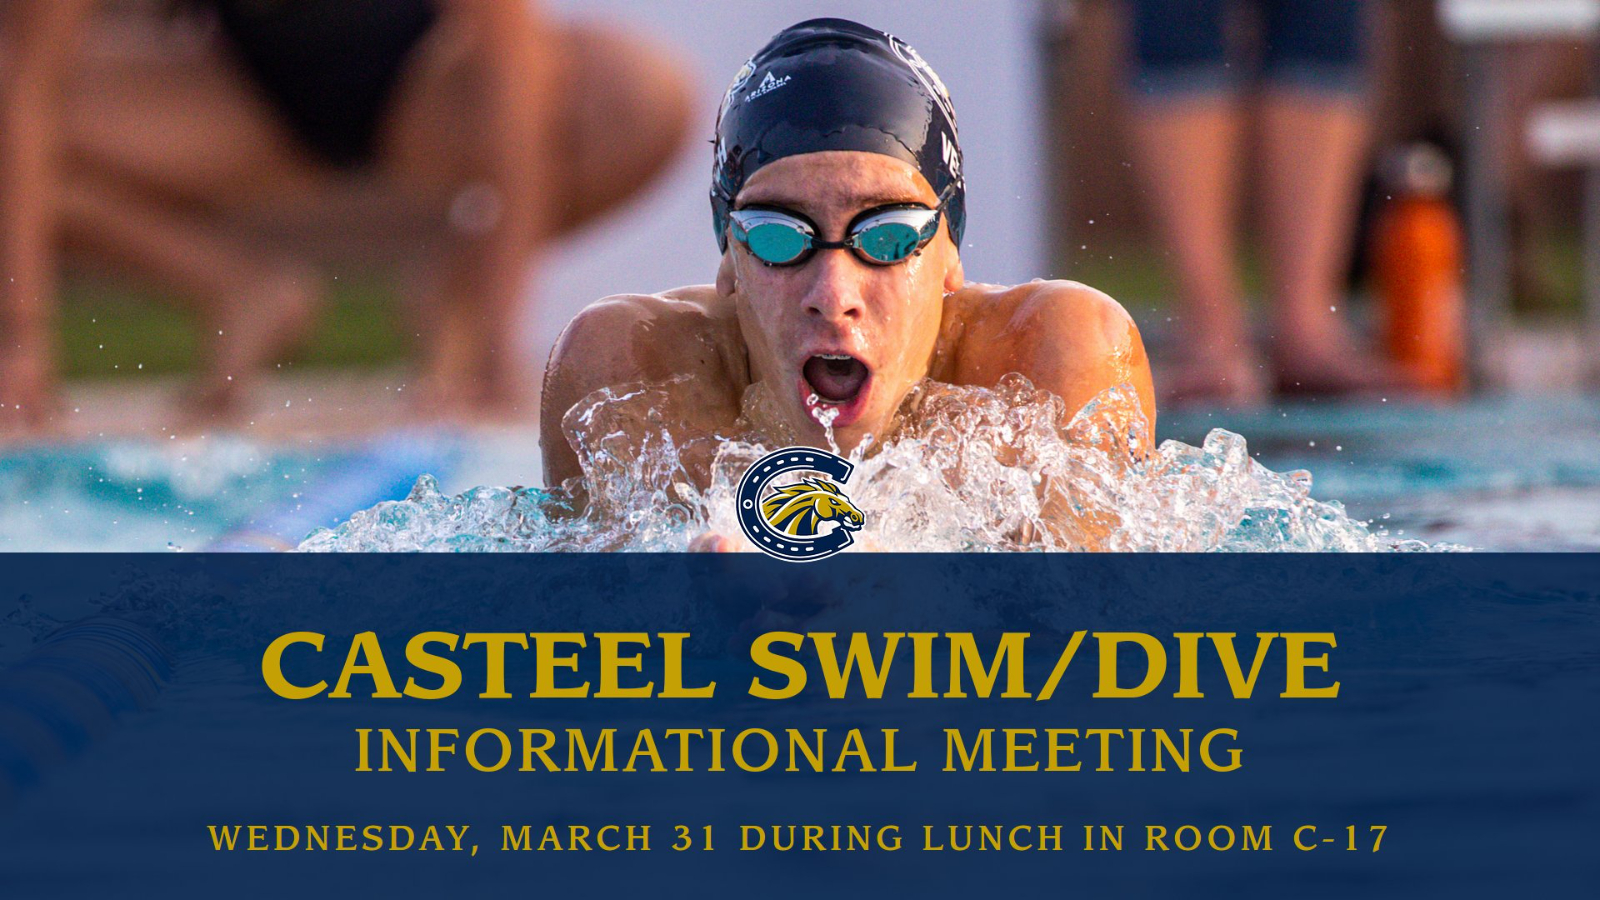 Meet Coach Leo – Swim/Dive meeting tomorrow during lunch in C-17